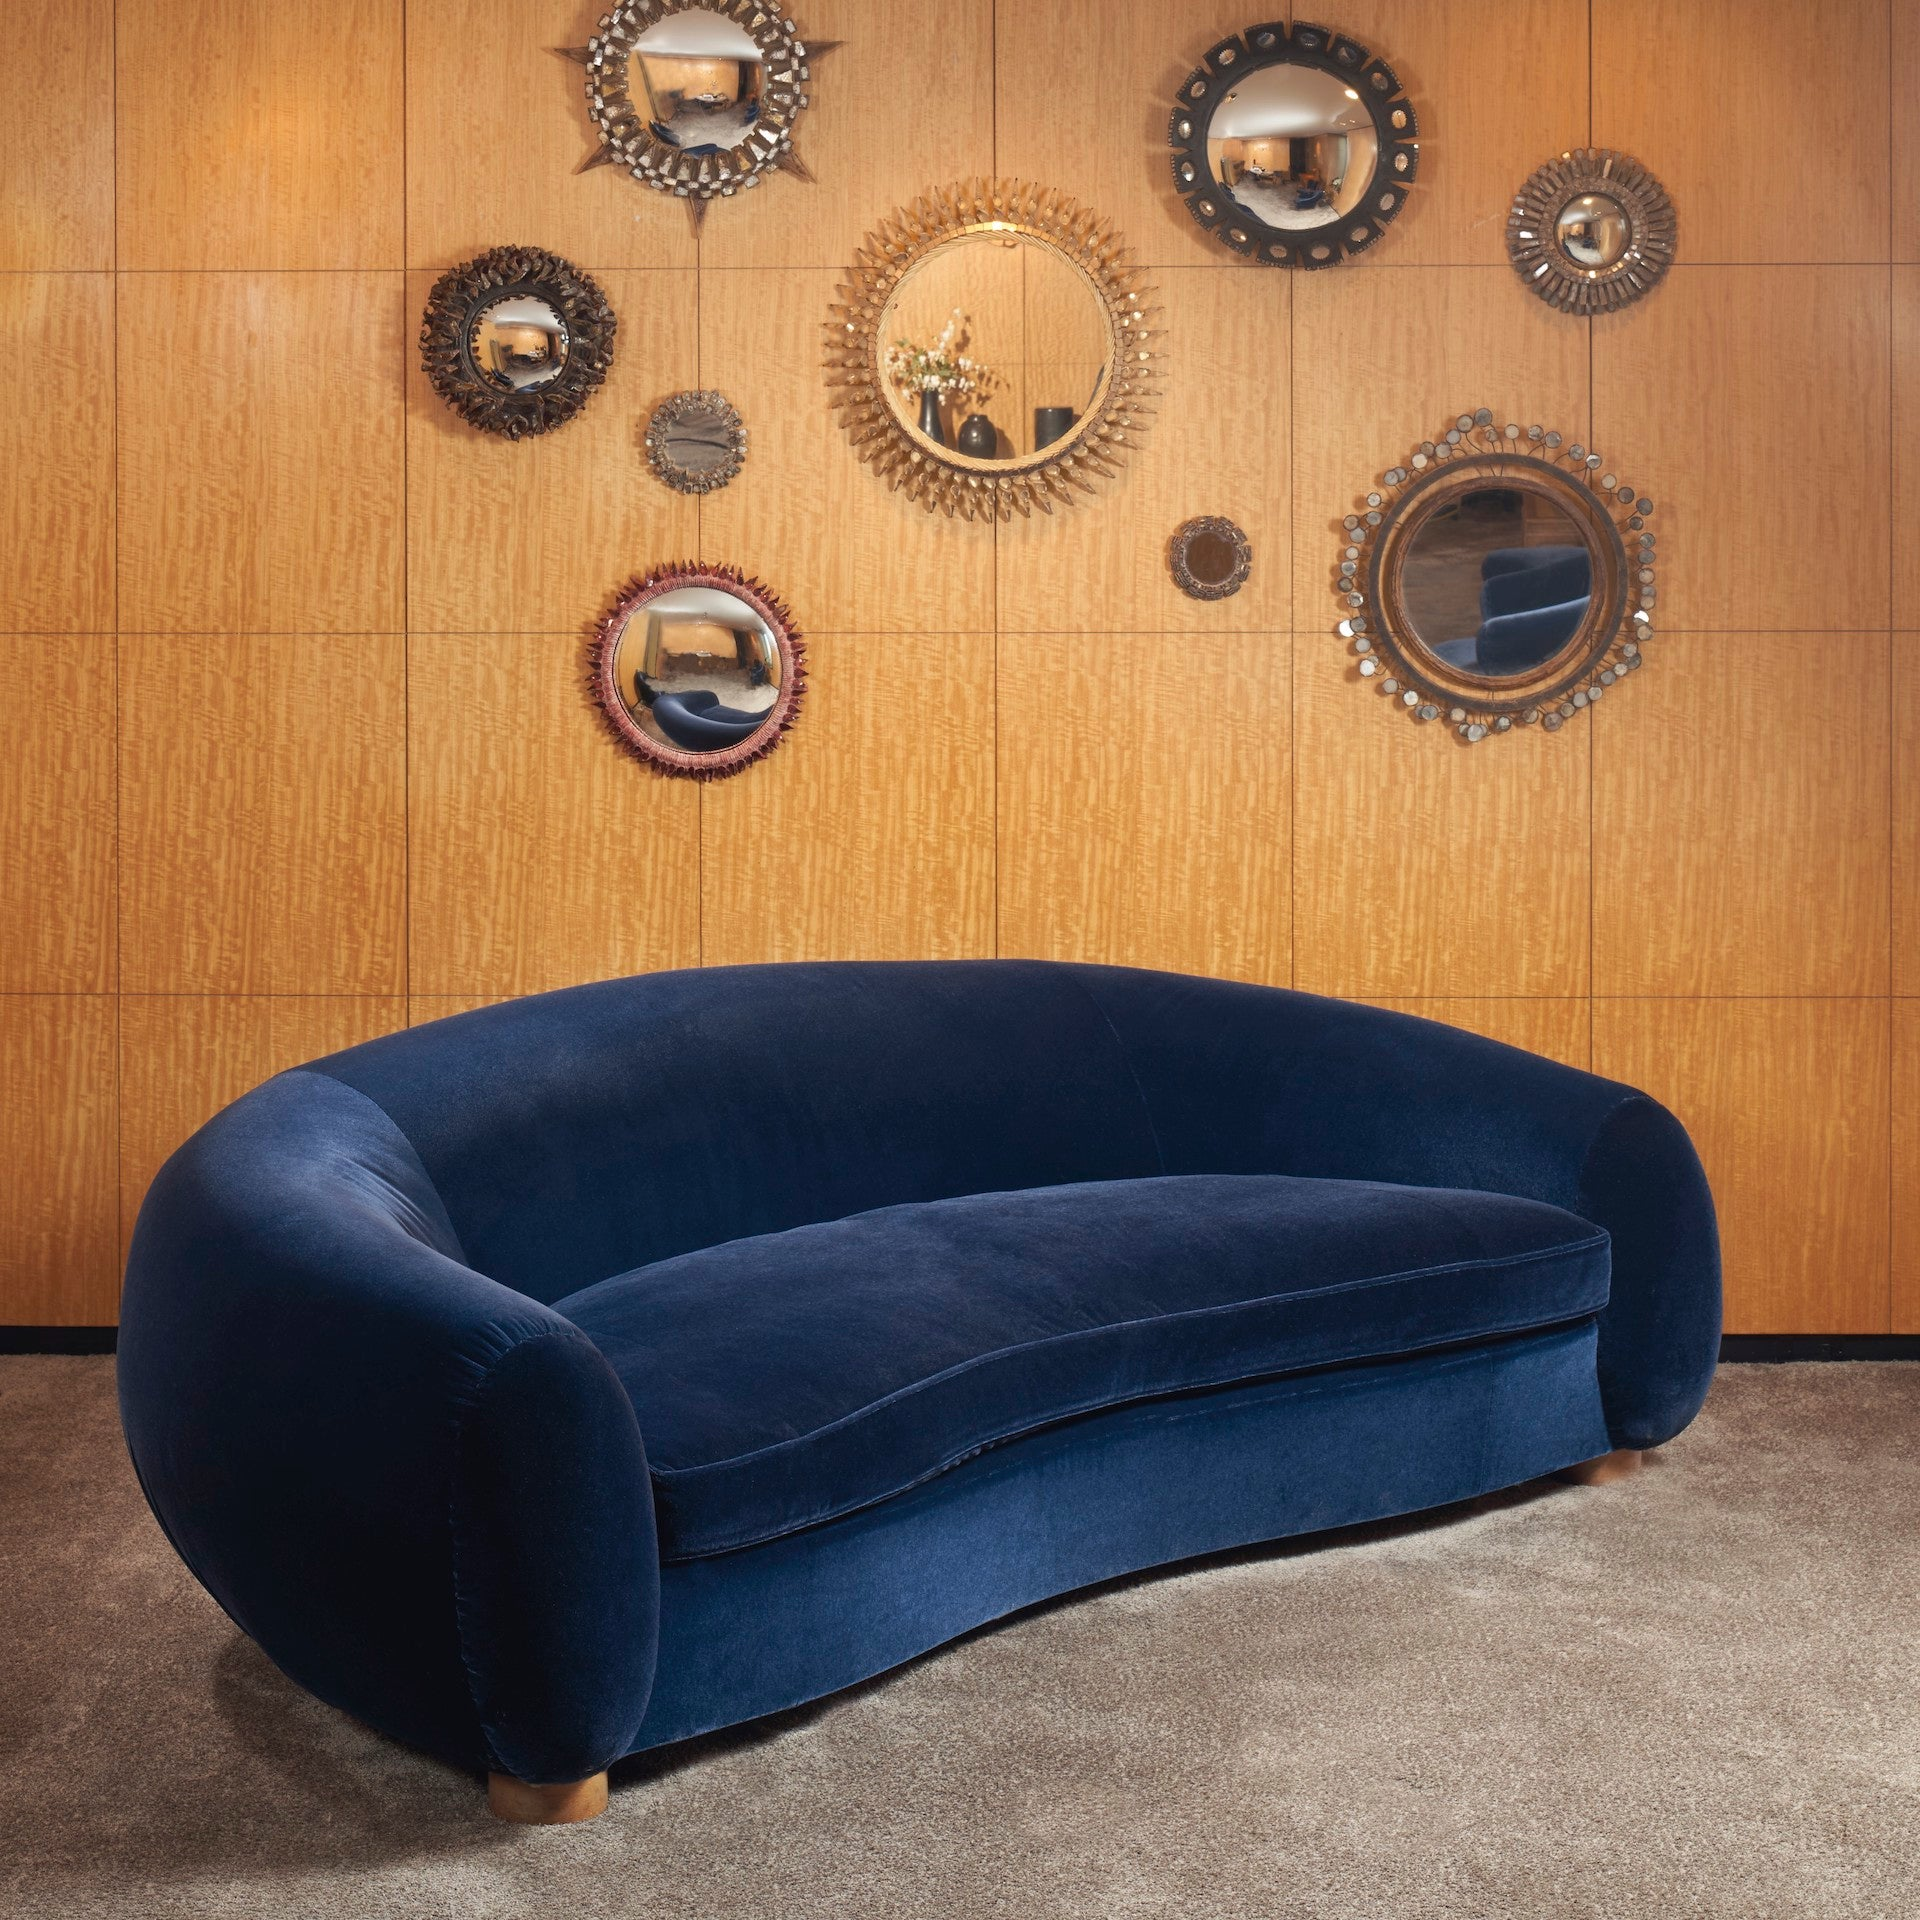 Christie's New York 26 May 2021 - Paris in New York: A Private Collection of Royère, Vautrin, Jouve [lot 13]: Ours Polaire Sofa by Jean Royere, c. 1950. Estimate: $400,000 - $600,000. Sold: $1,230,000. Photo © Christie's Images Limited 2021